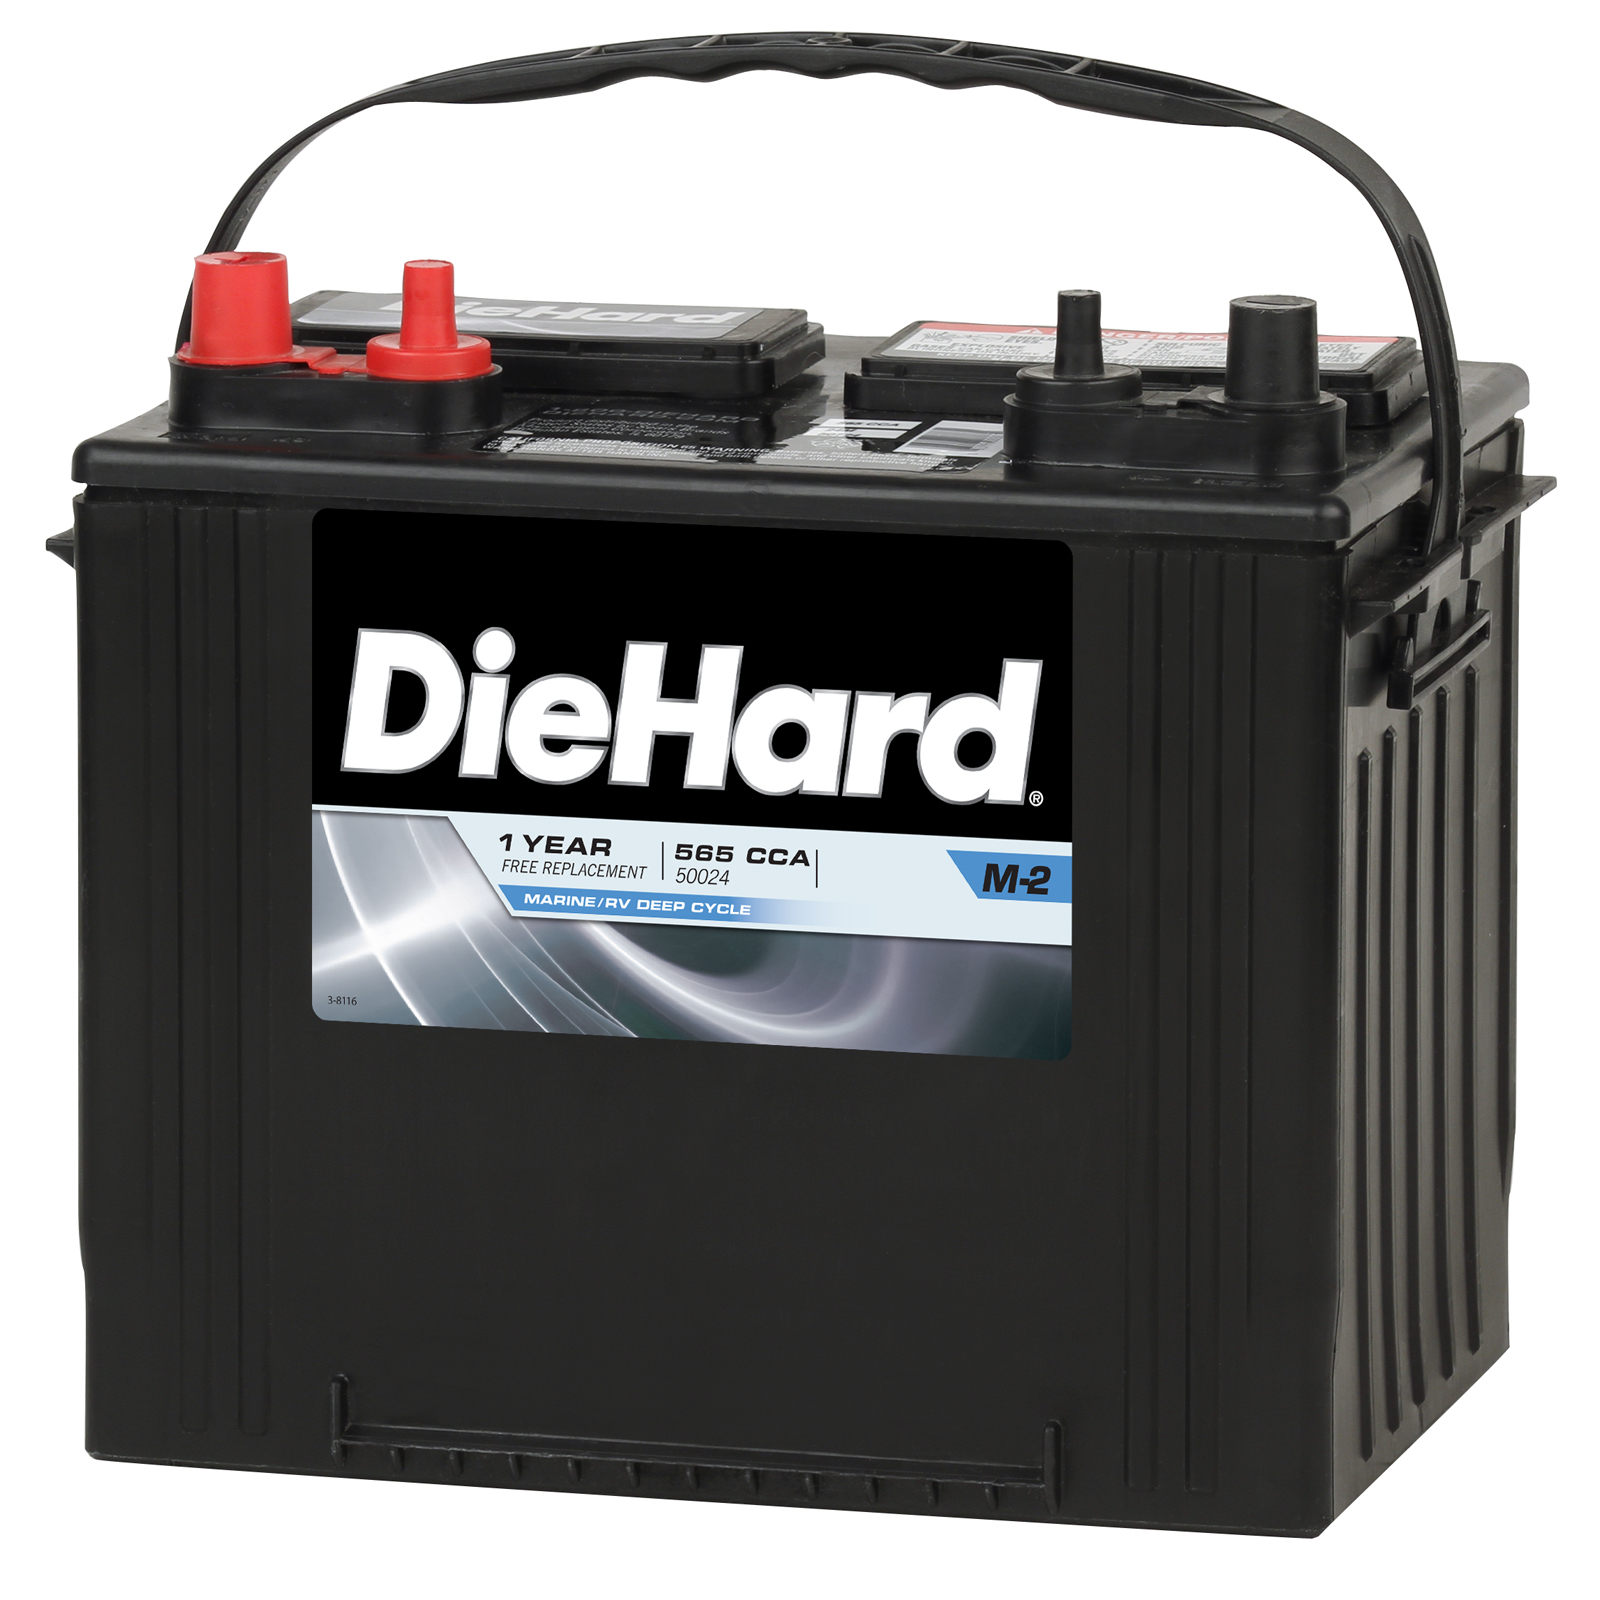 Image of DieHard Marine/RV Battery DP24 - Group Size EP-24M (Price with Exchange)